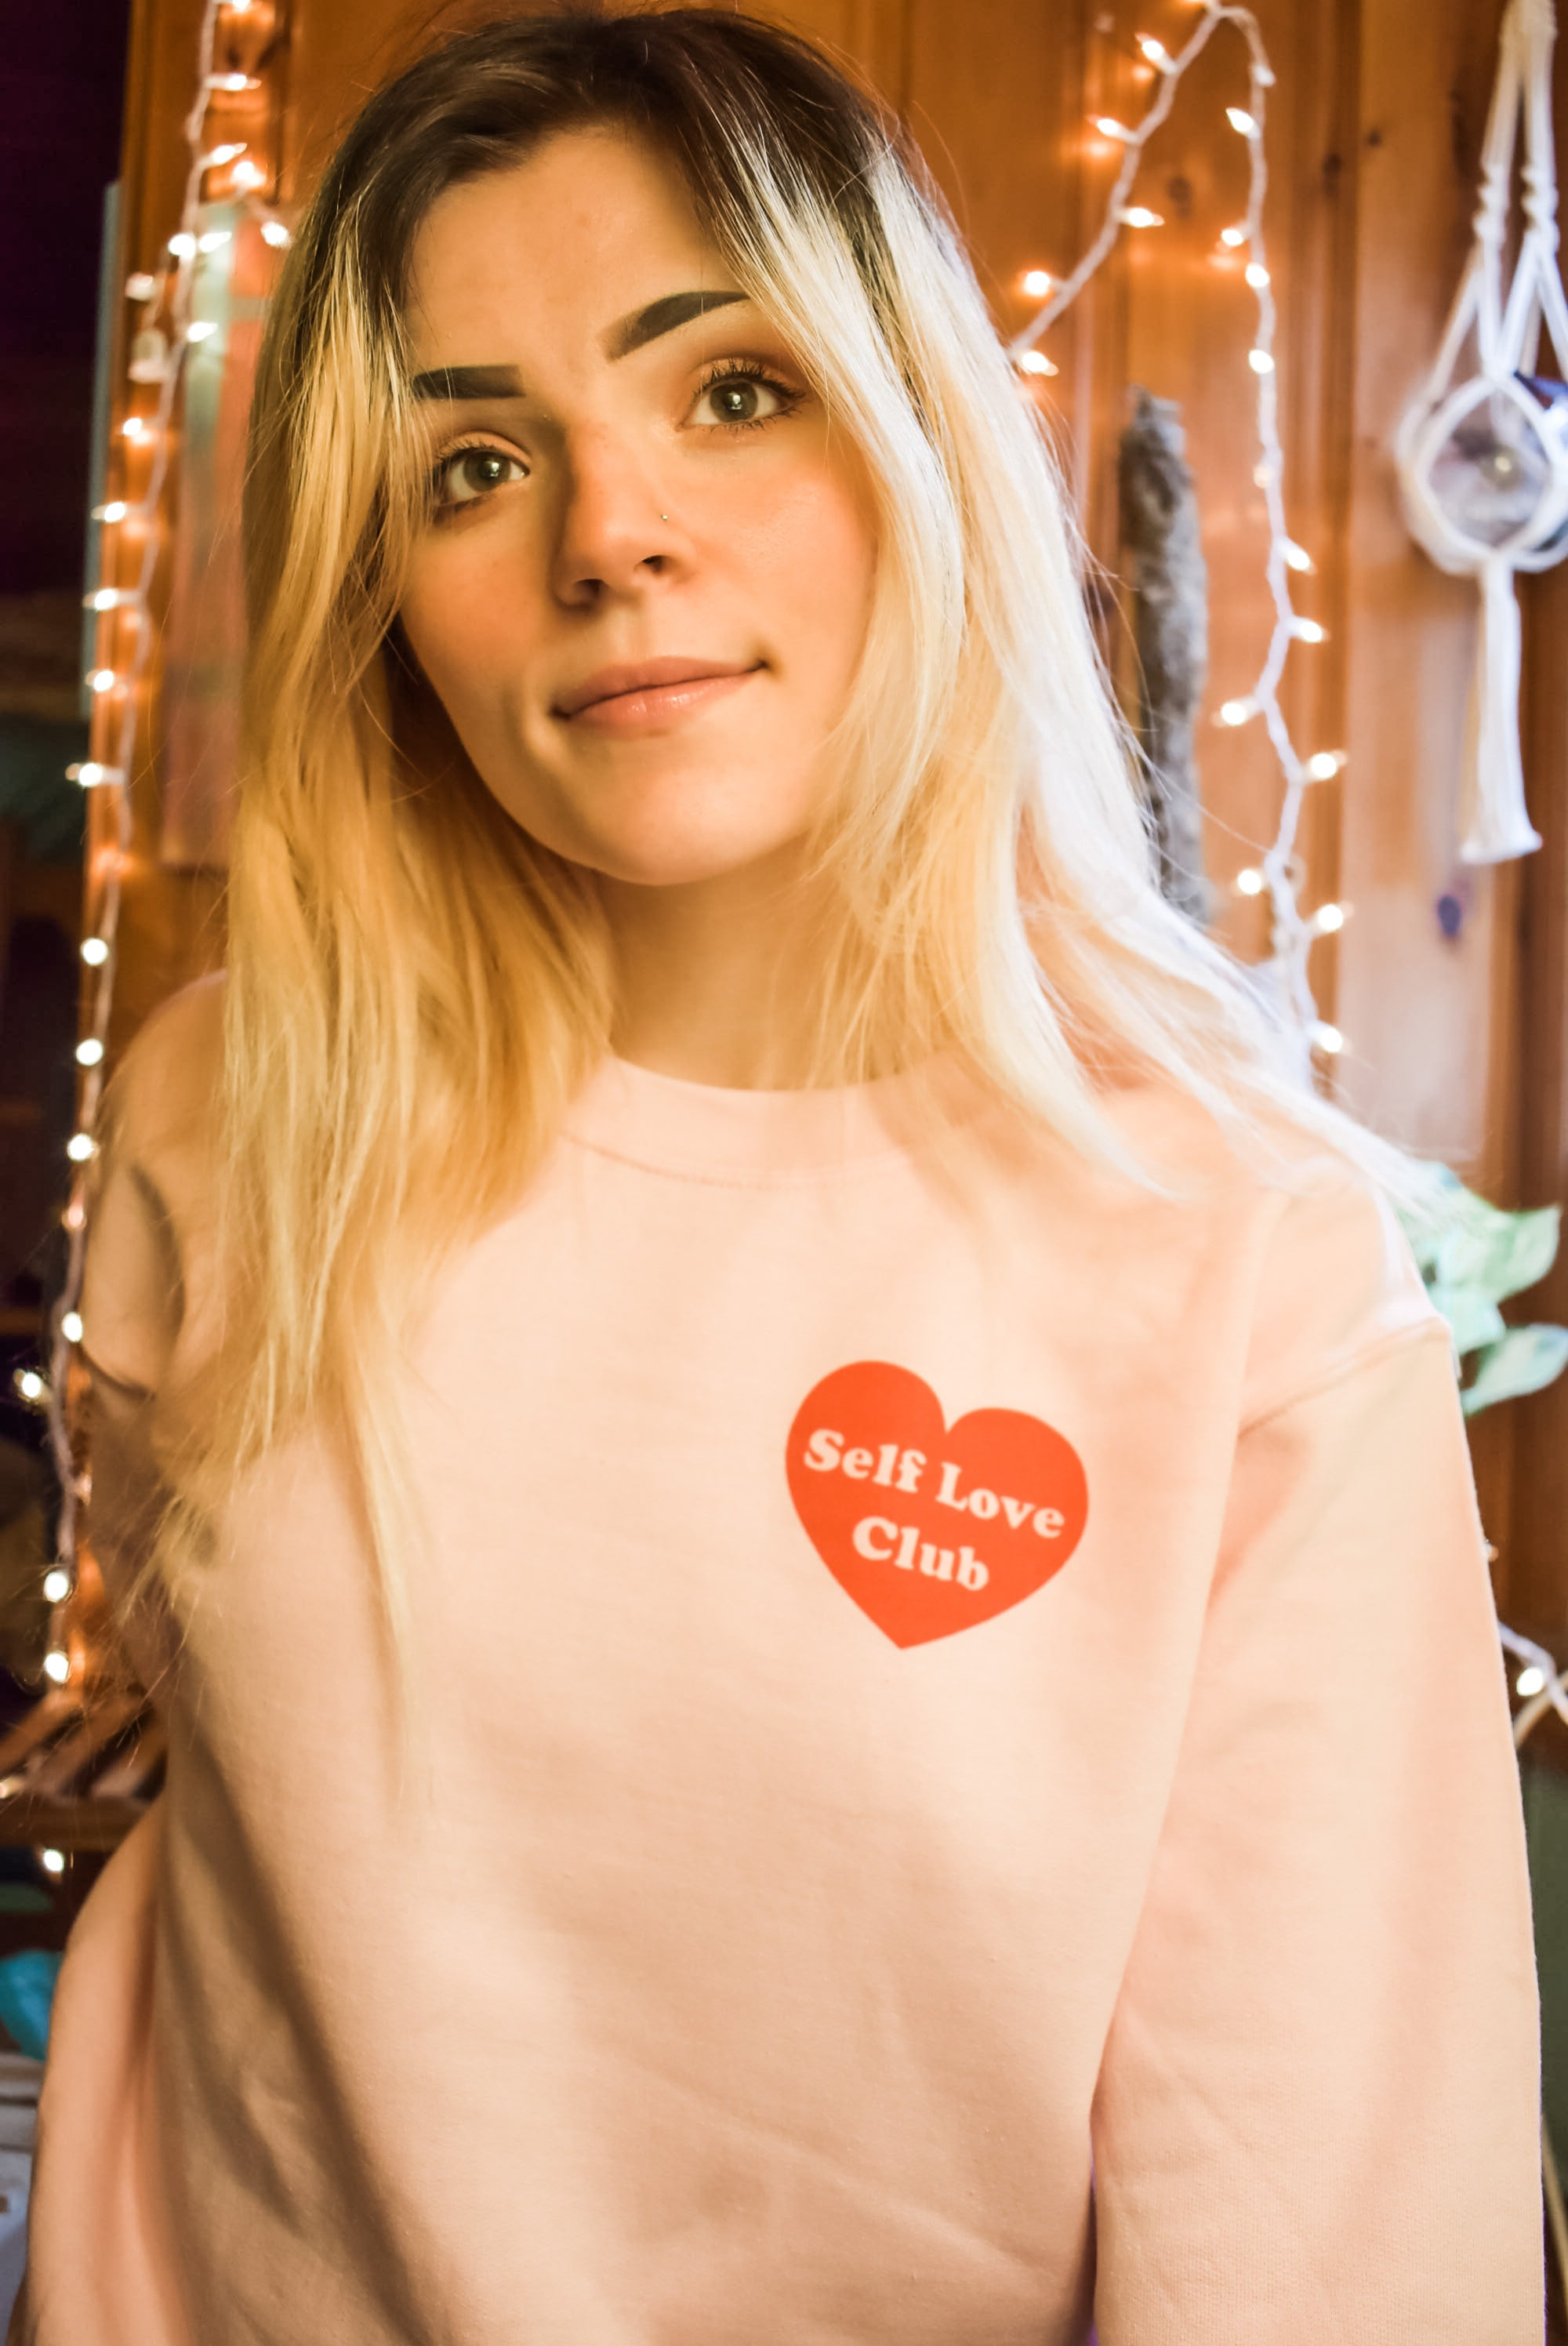 Self Love Club Crewneck Pullover